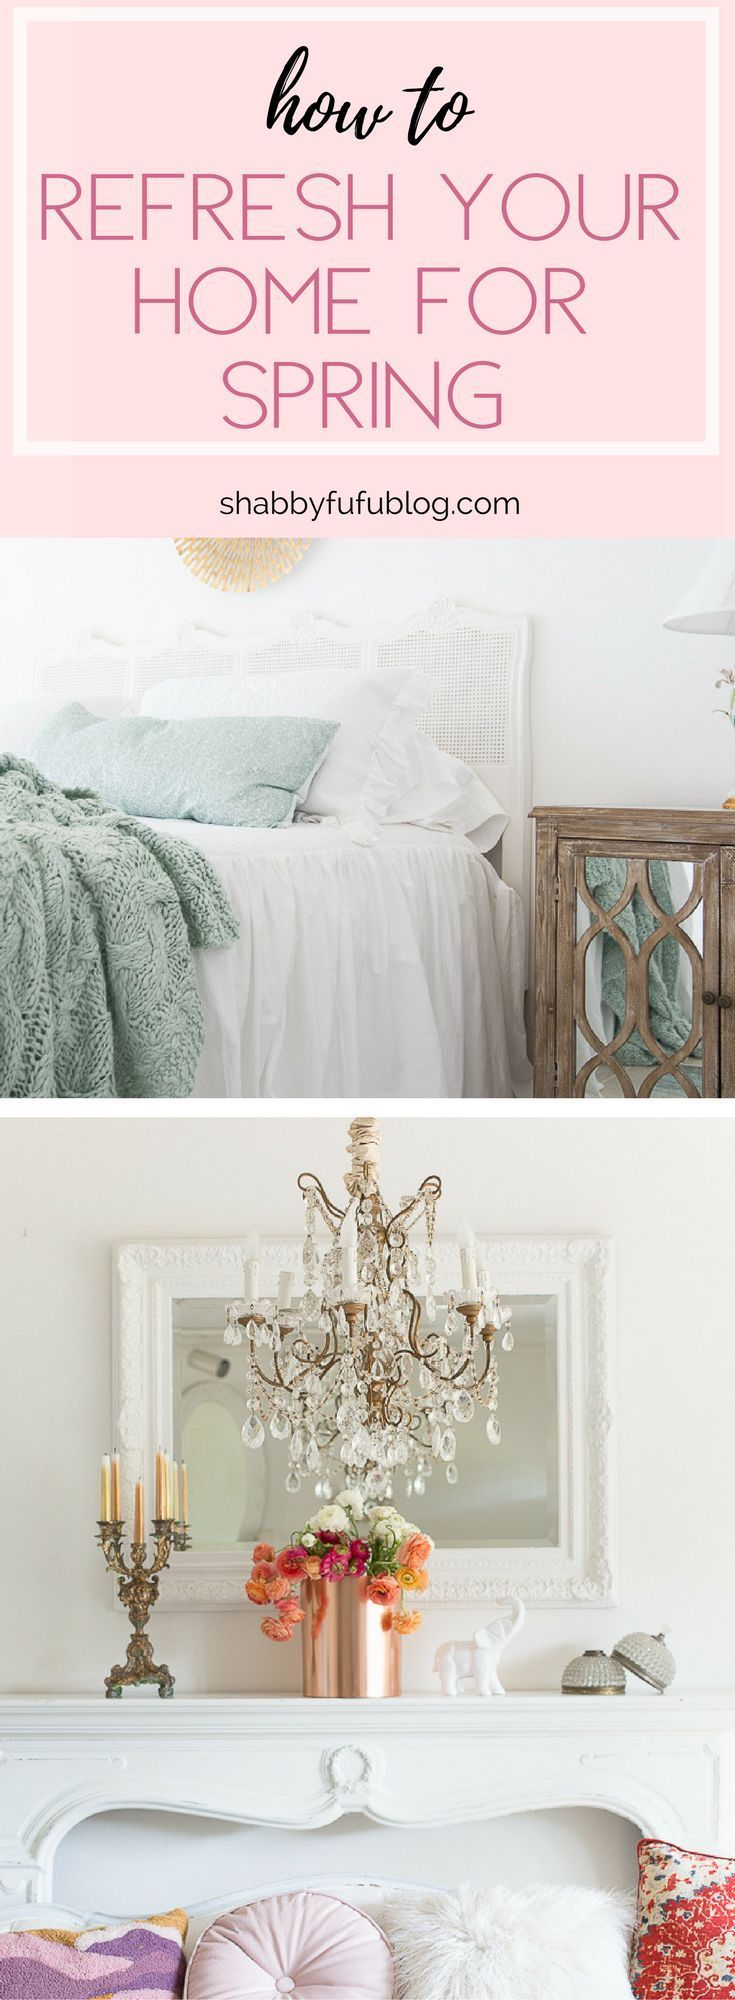 5 Easy Ways To Refresh Your Home